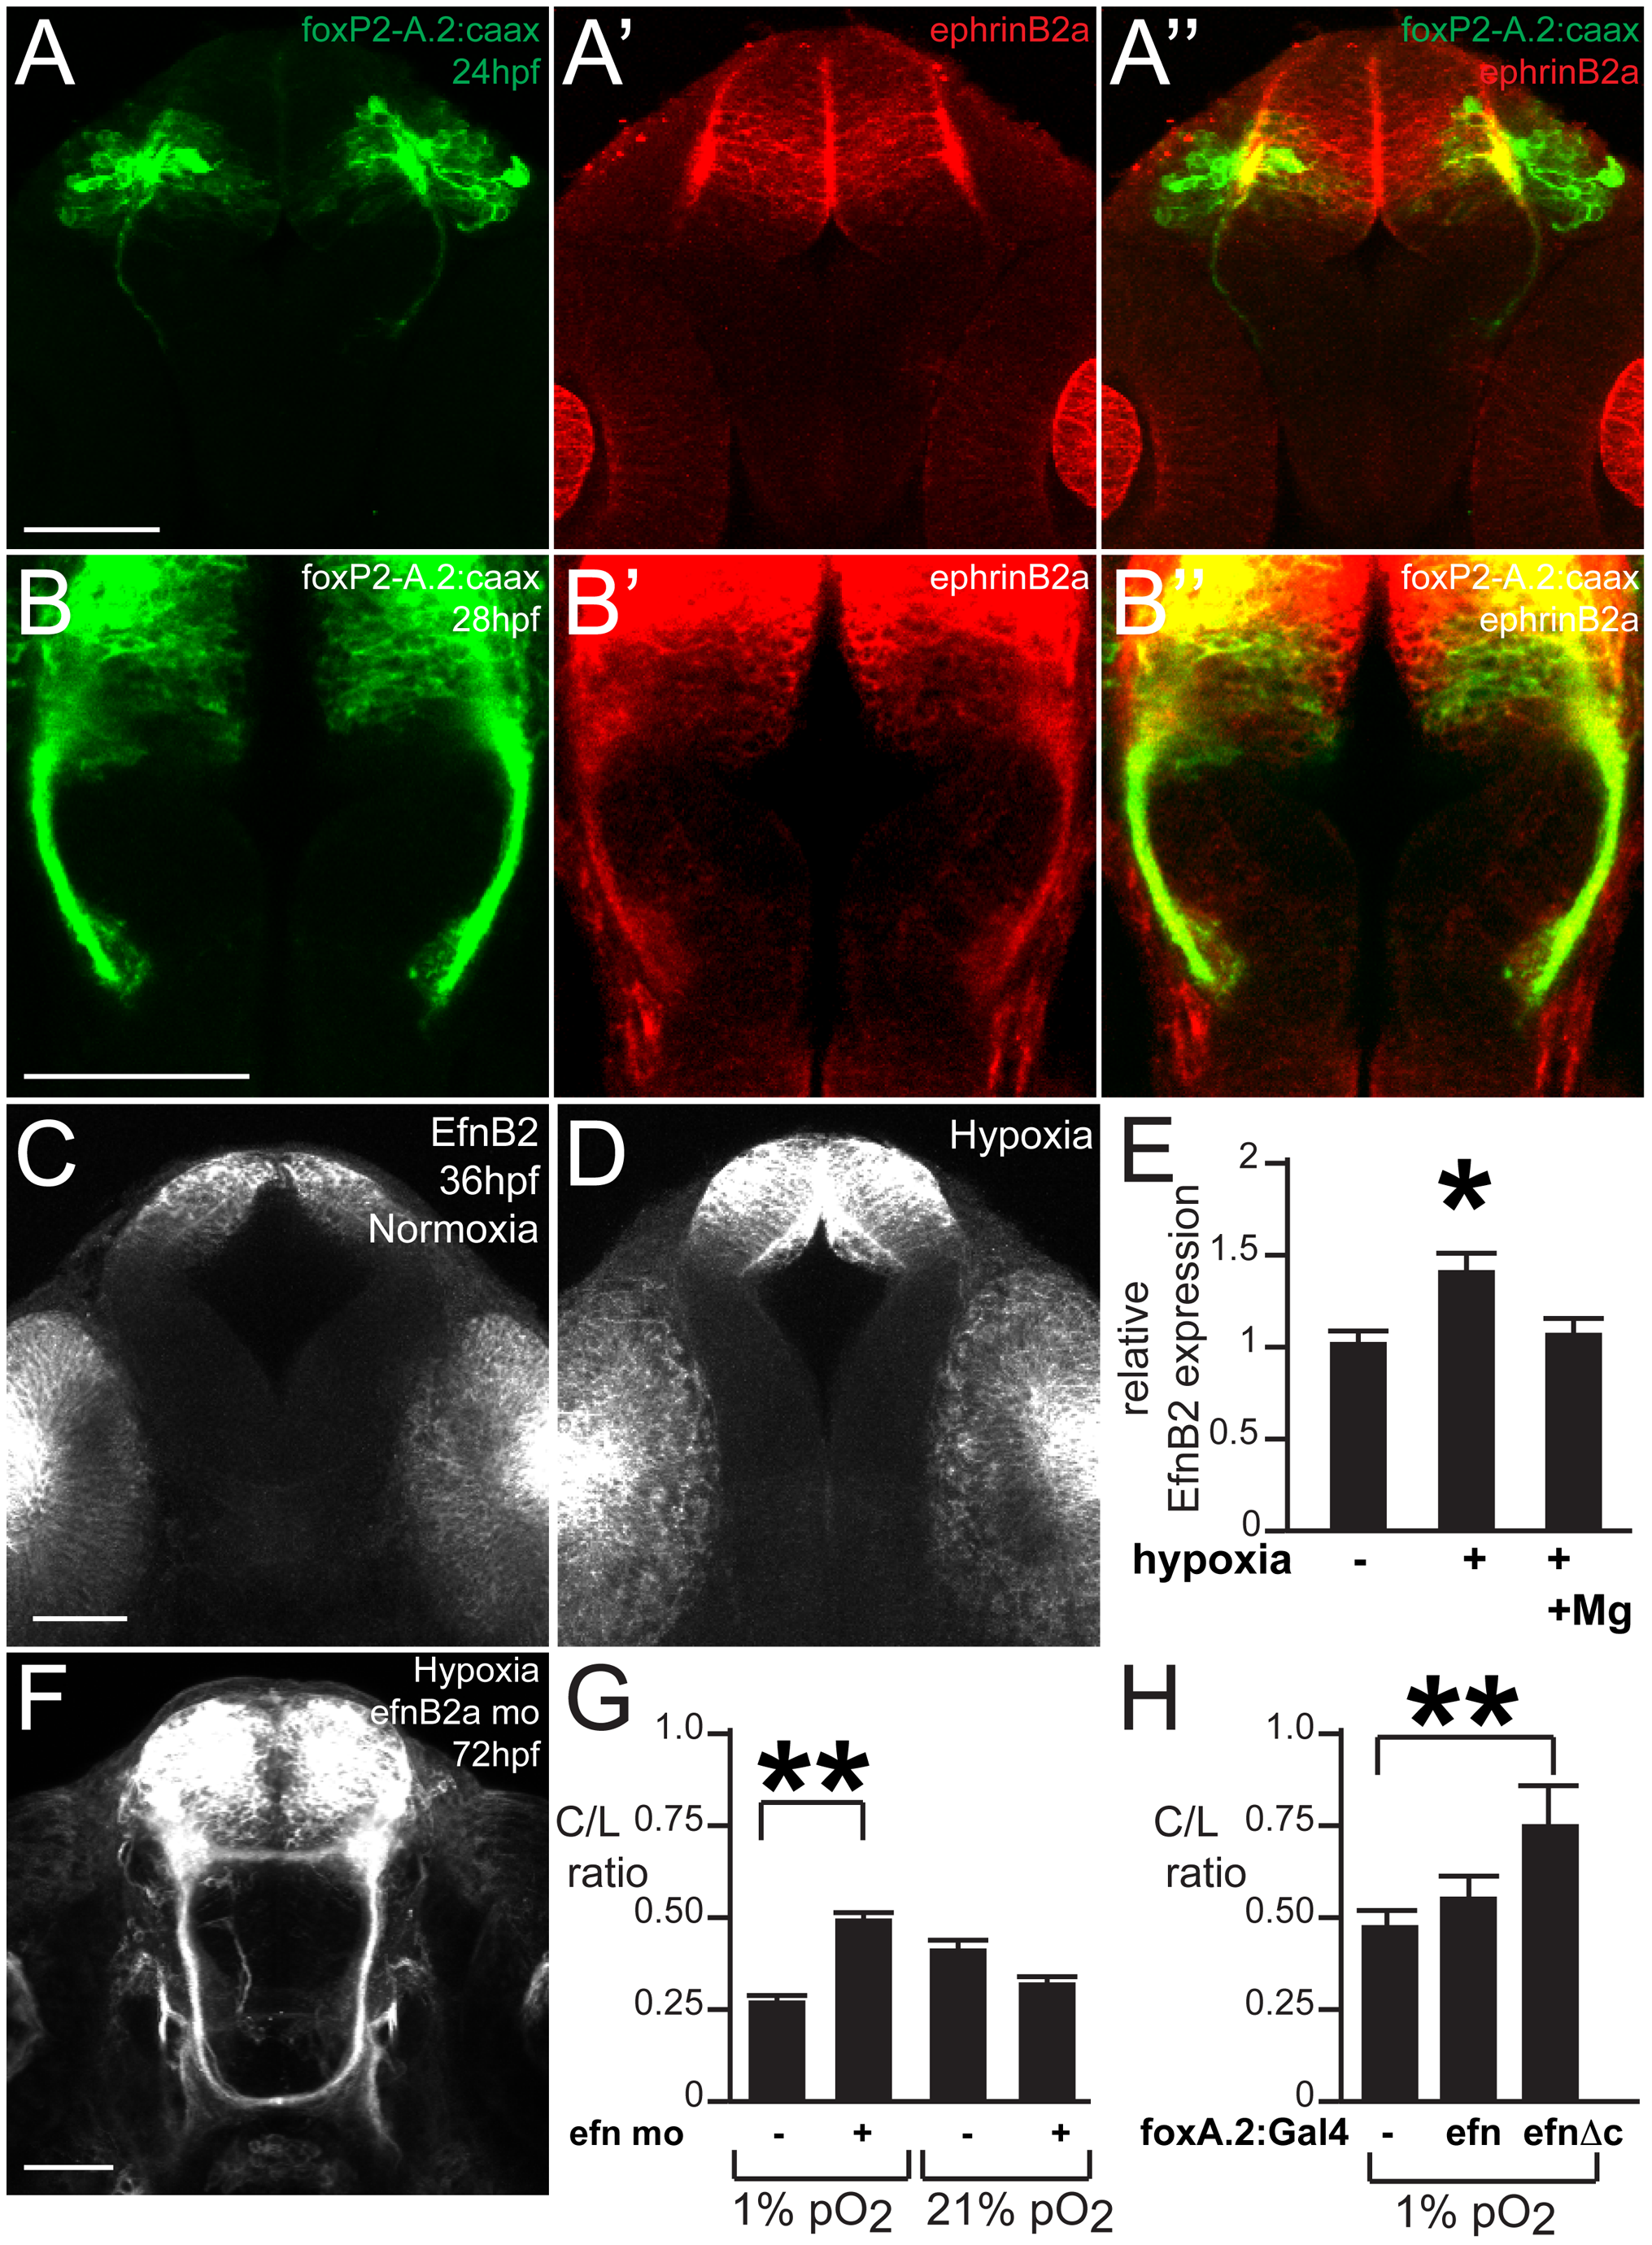 ephrinB2a mediates the hypoxia-induced TCPT pathfinding errors.